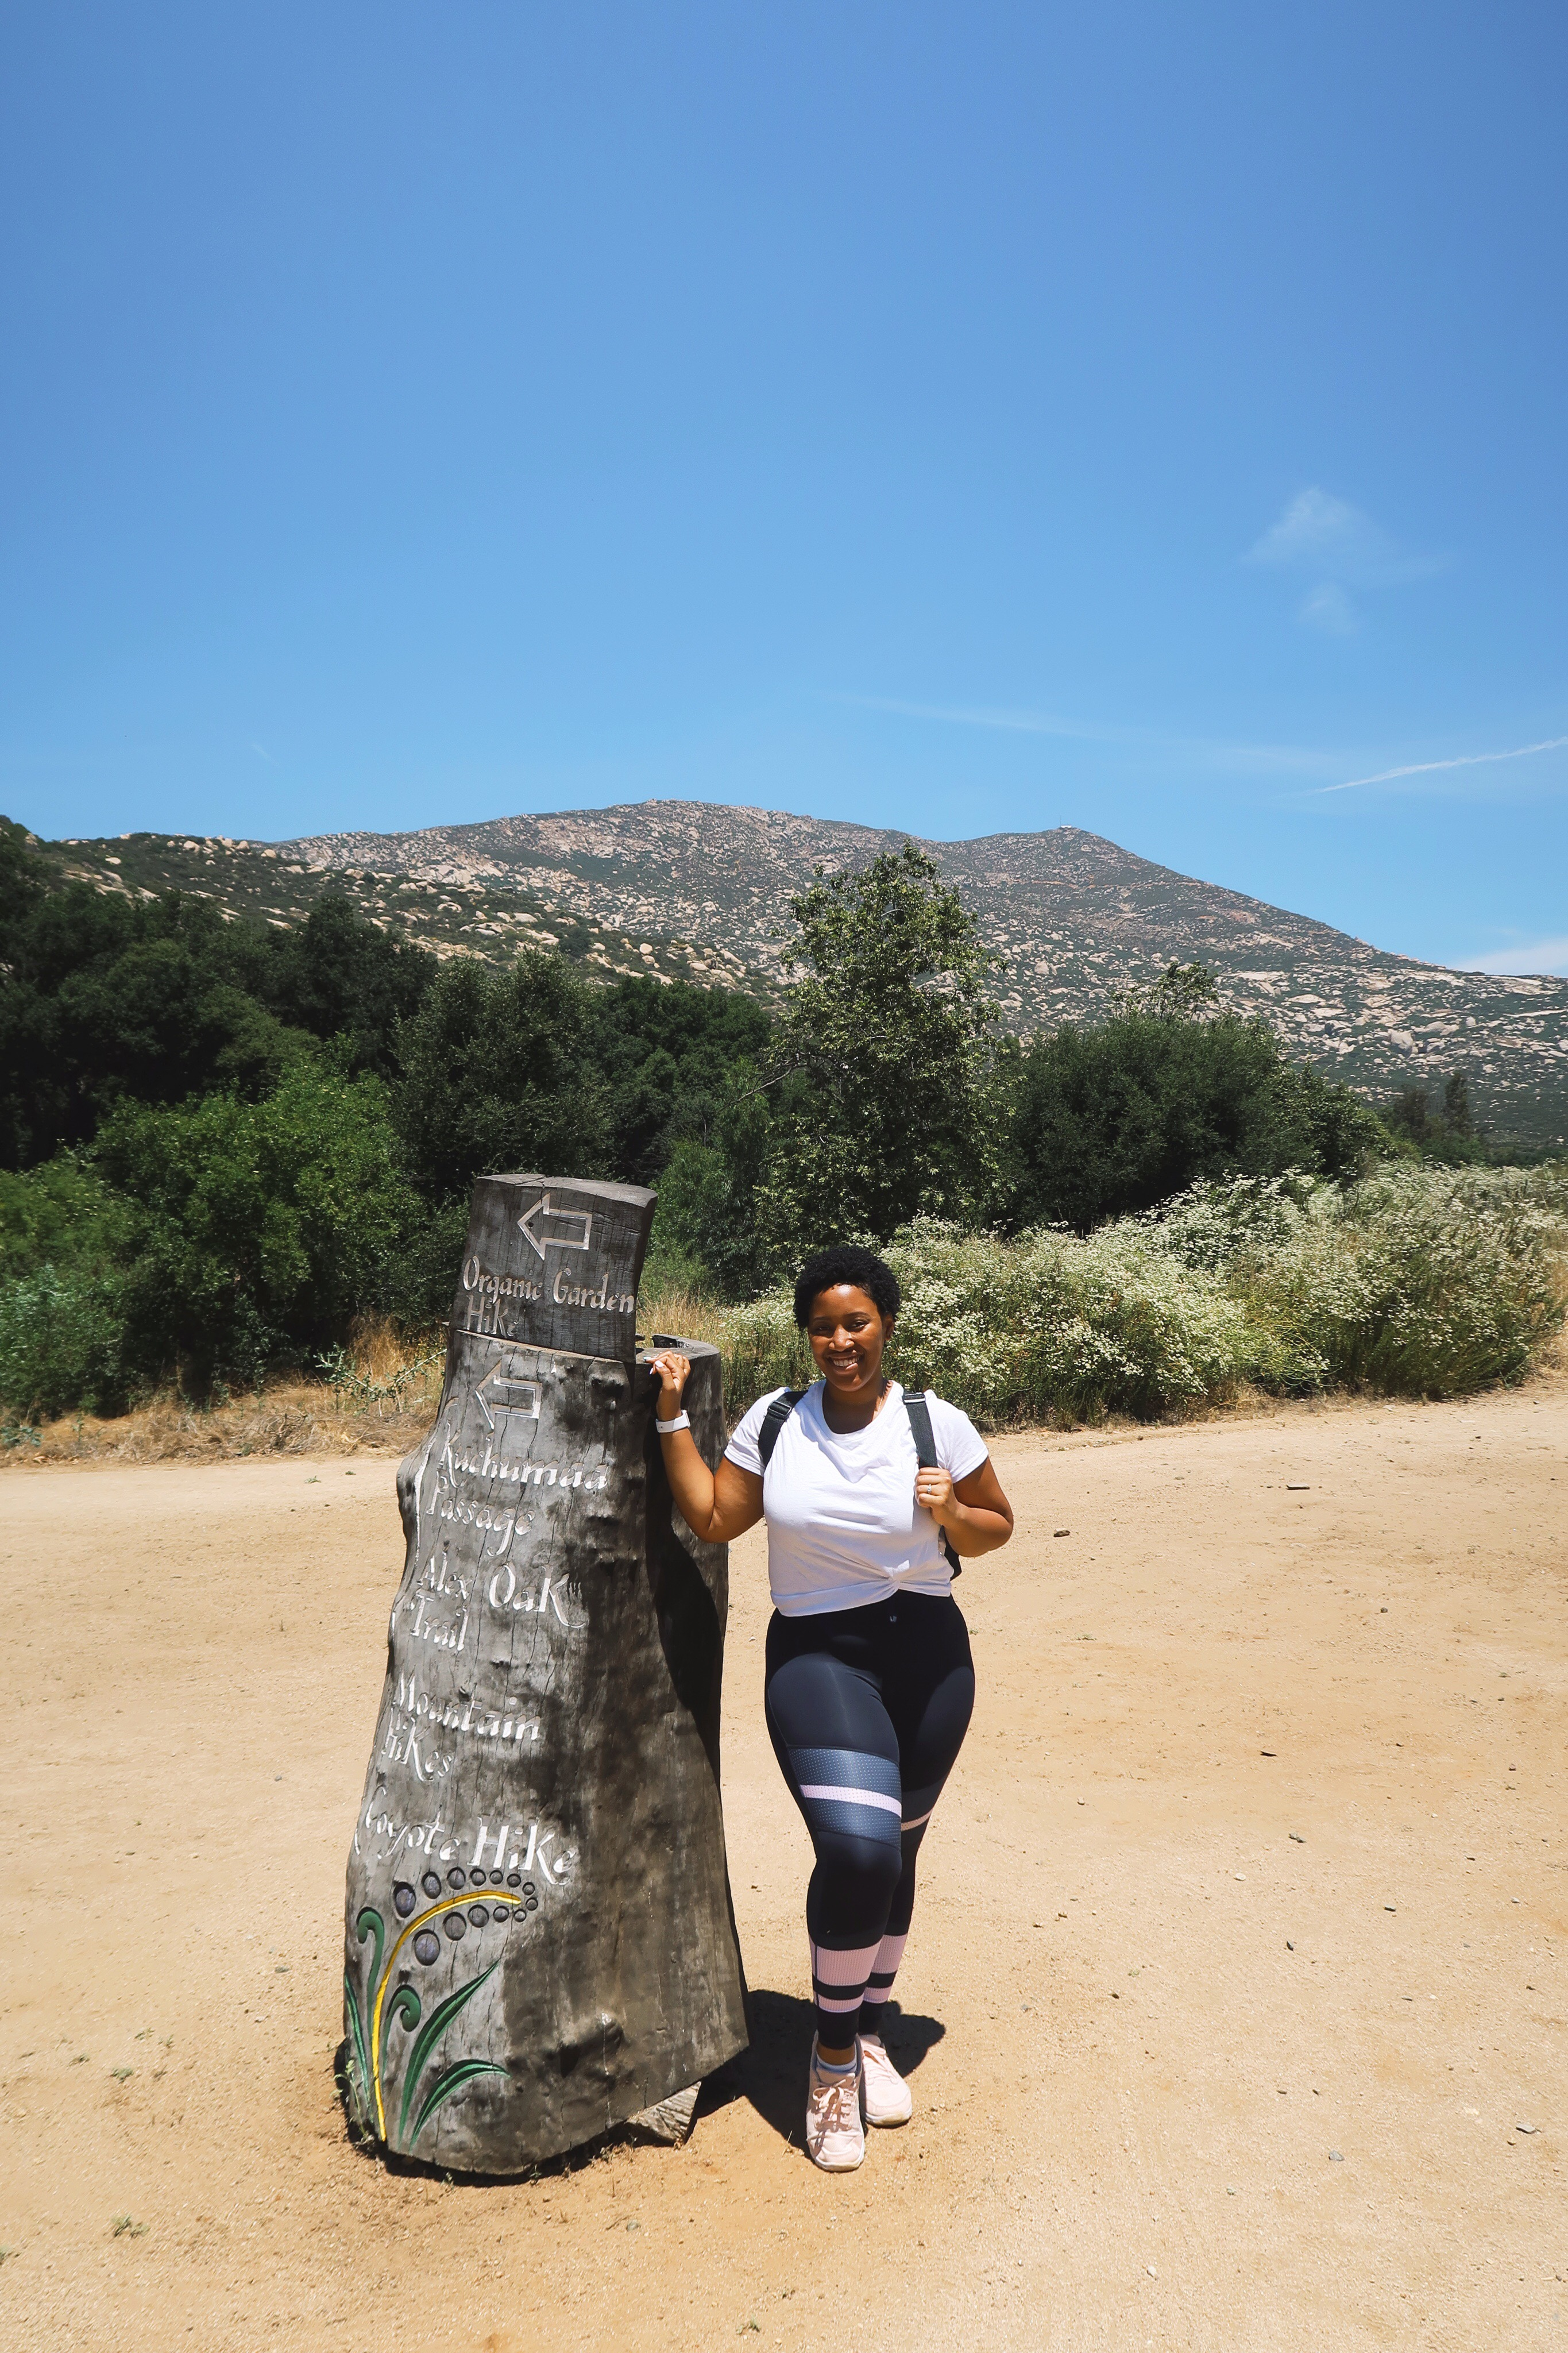 Jessica standing by a tree stump.